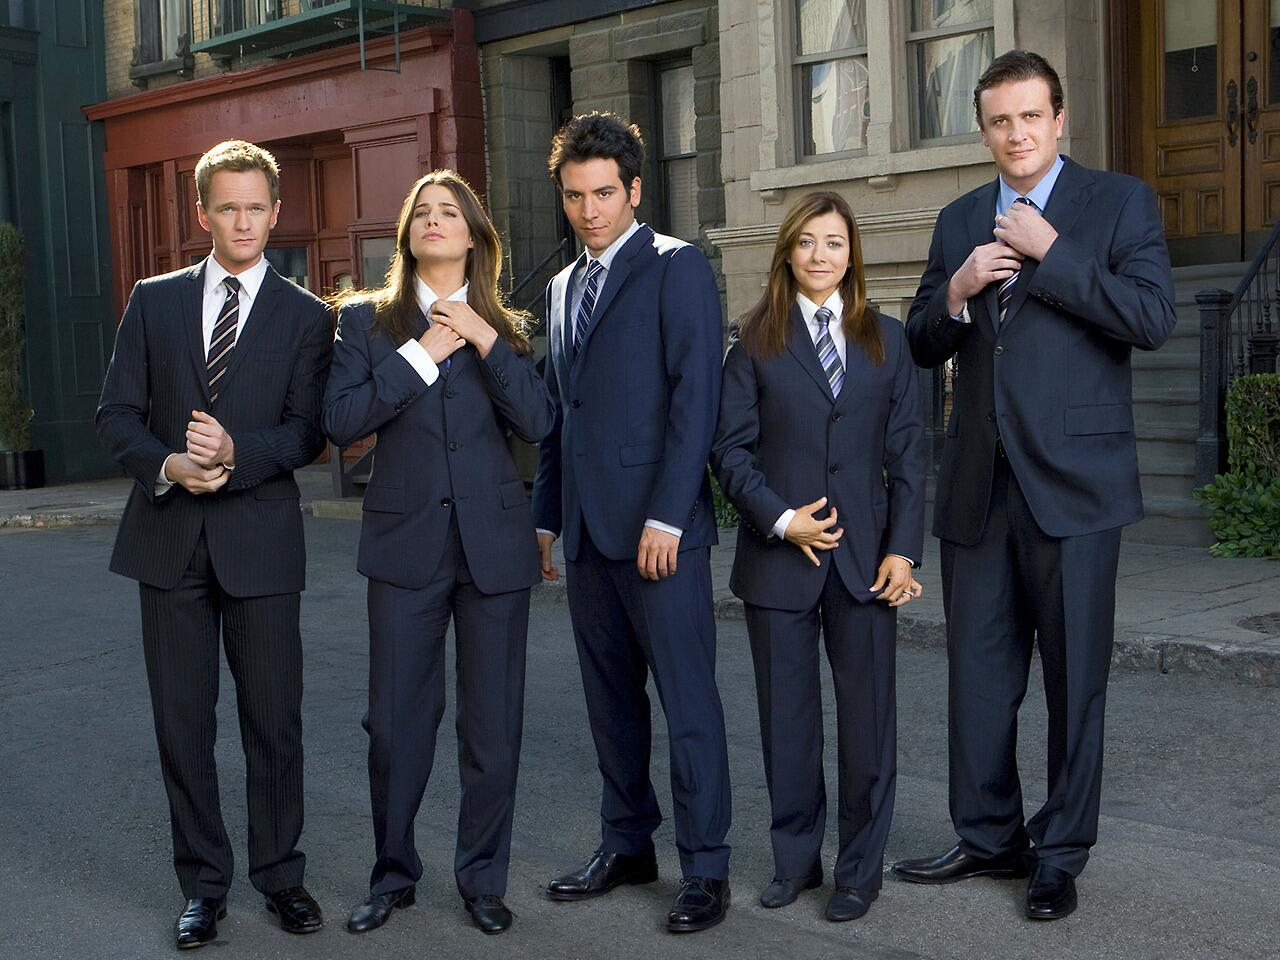 Suit up bitches! #Himym is back tonight! http://t.co/oD8LO3gkoa